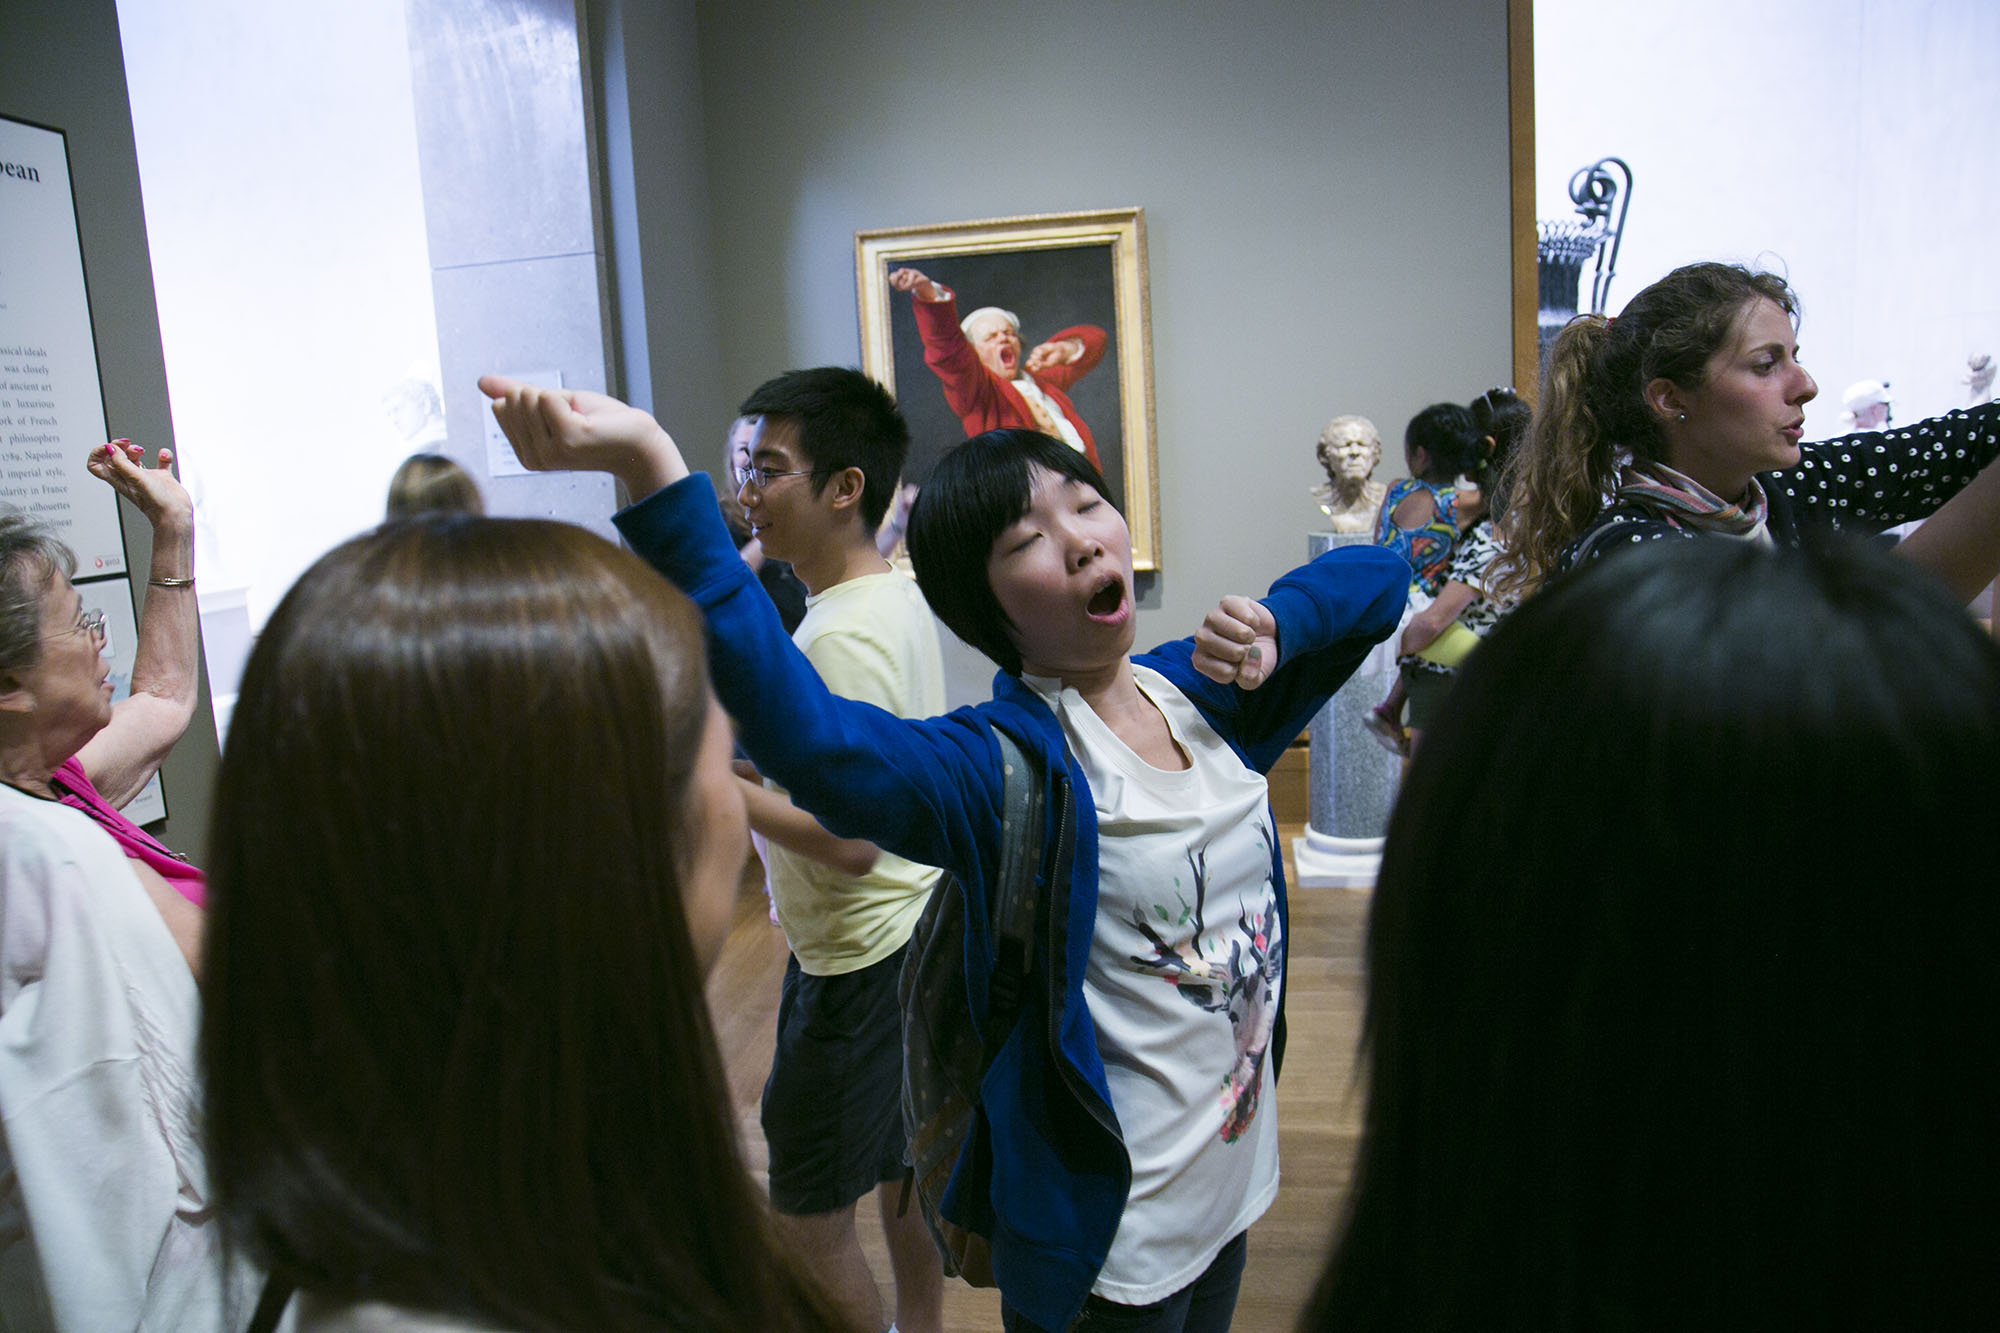 Move! participants work together to imitate details in Joseph Ducreux's Self-Portrait, Yawning.